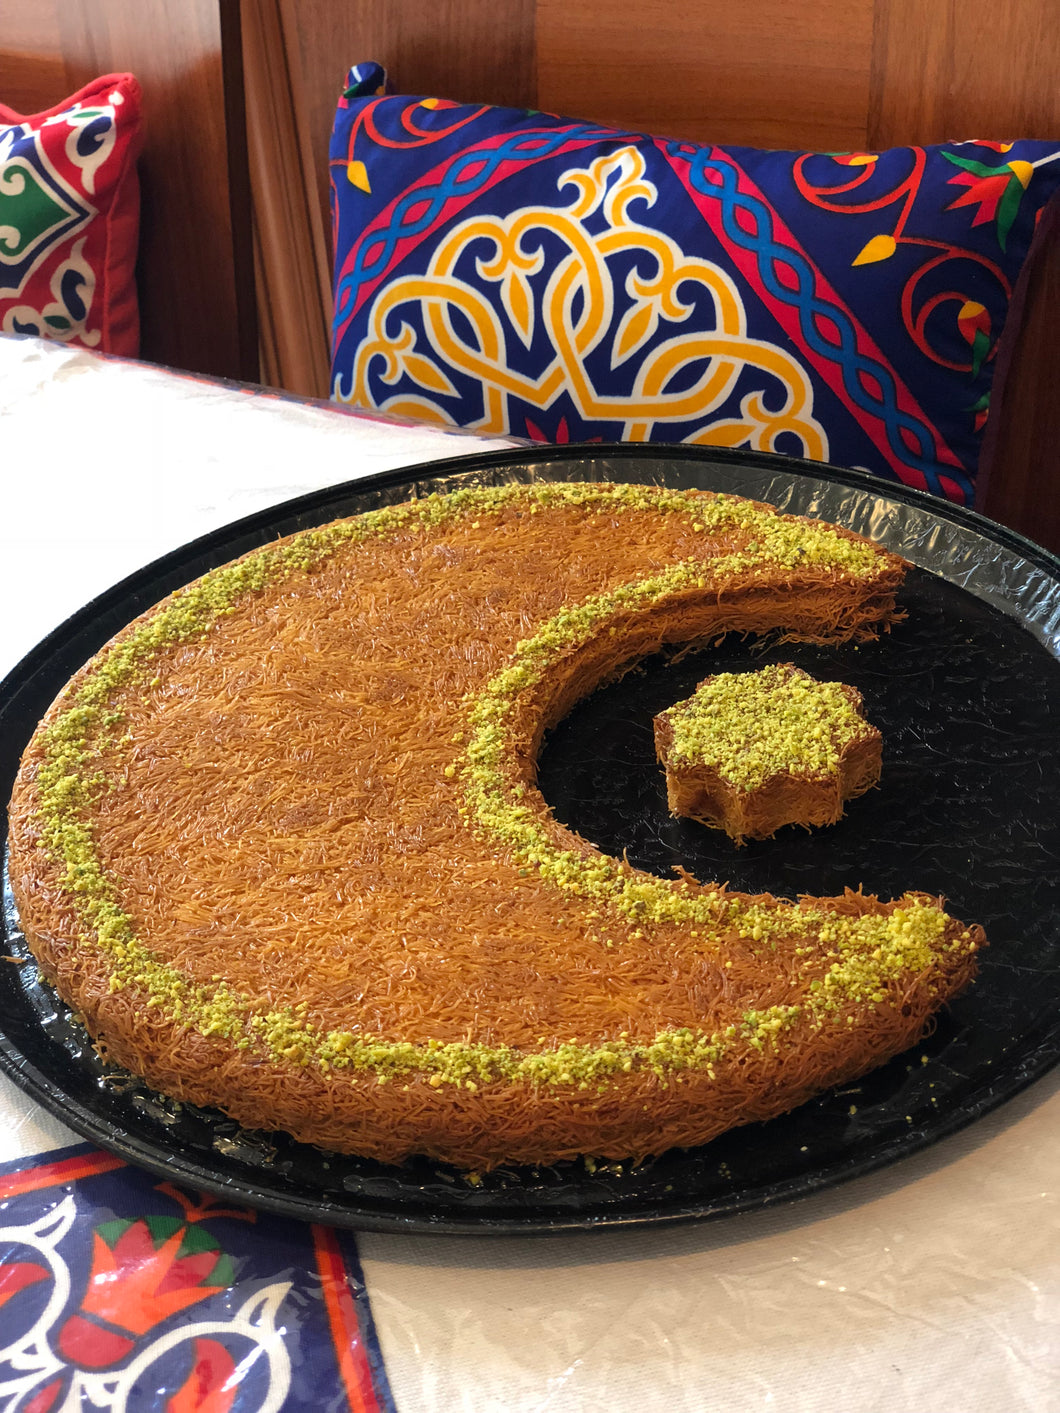 Crescent & Star knafeh